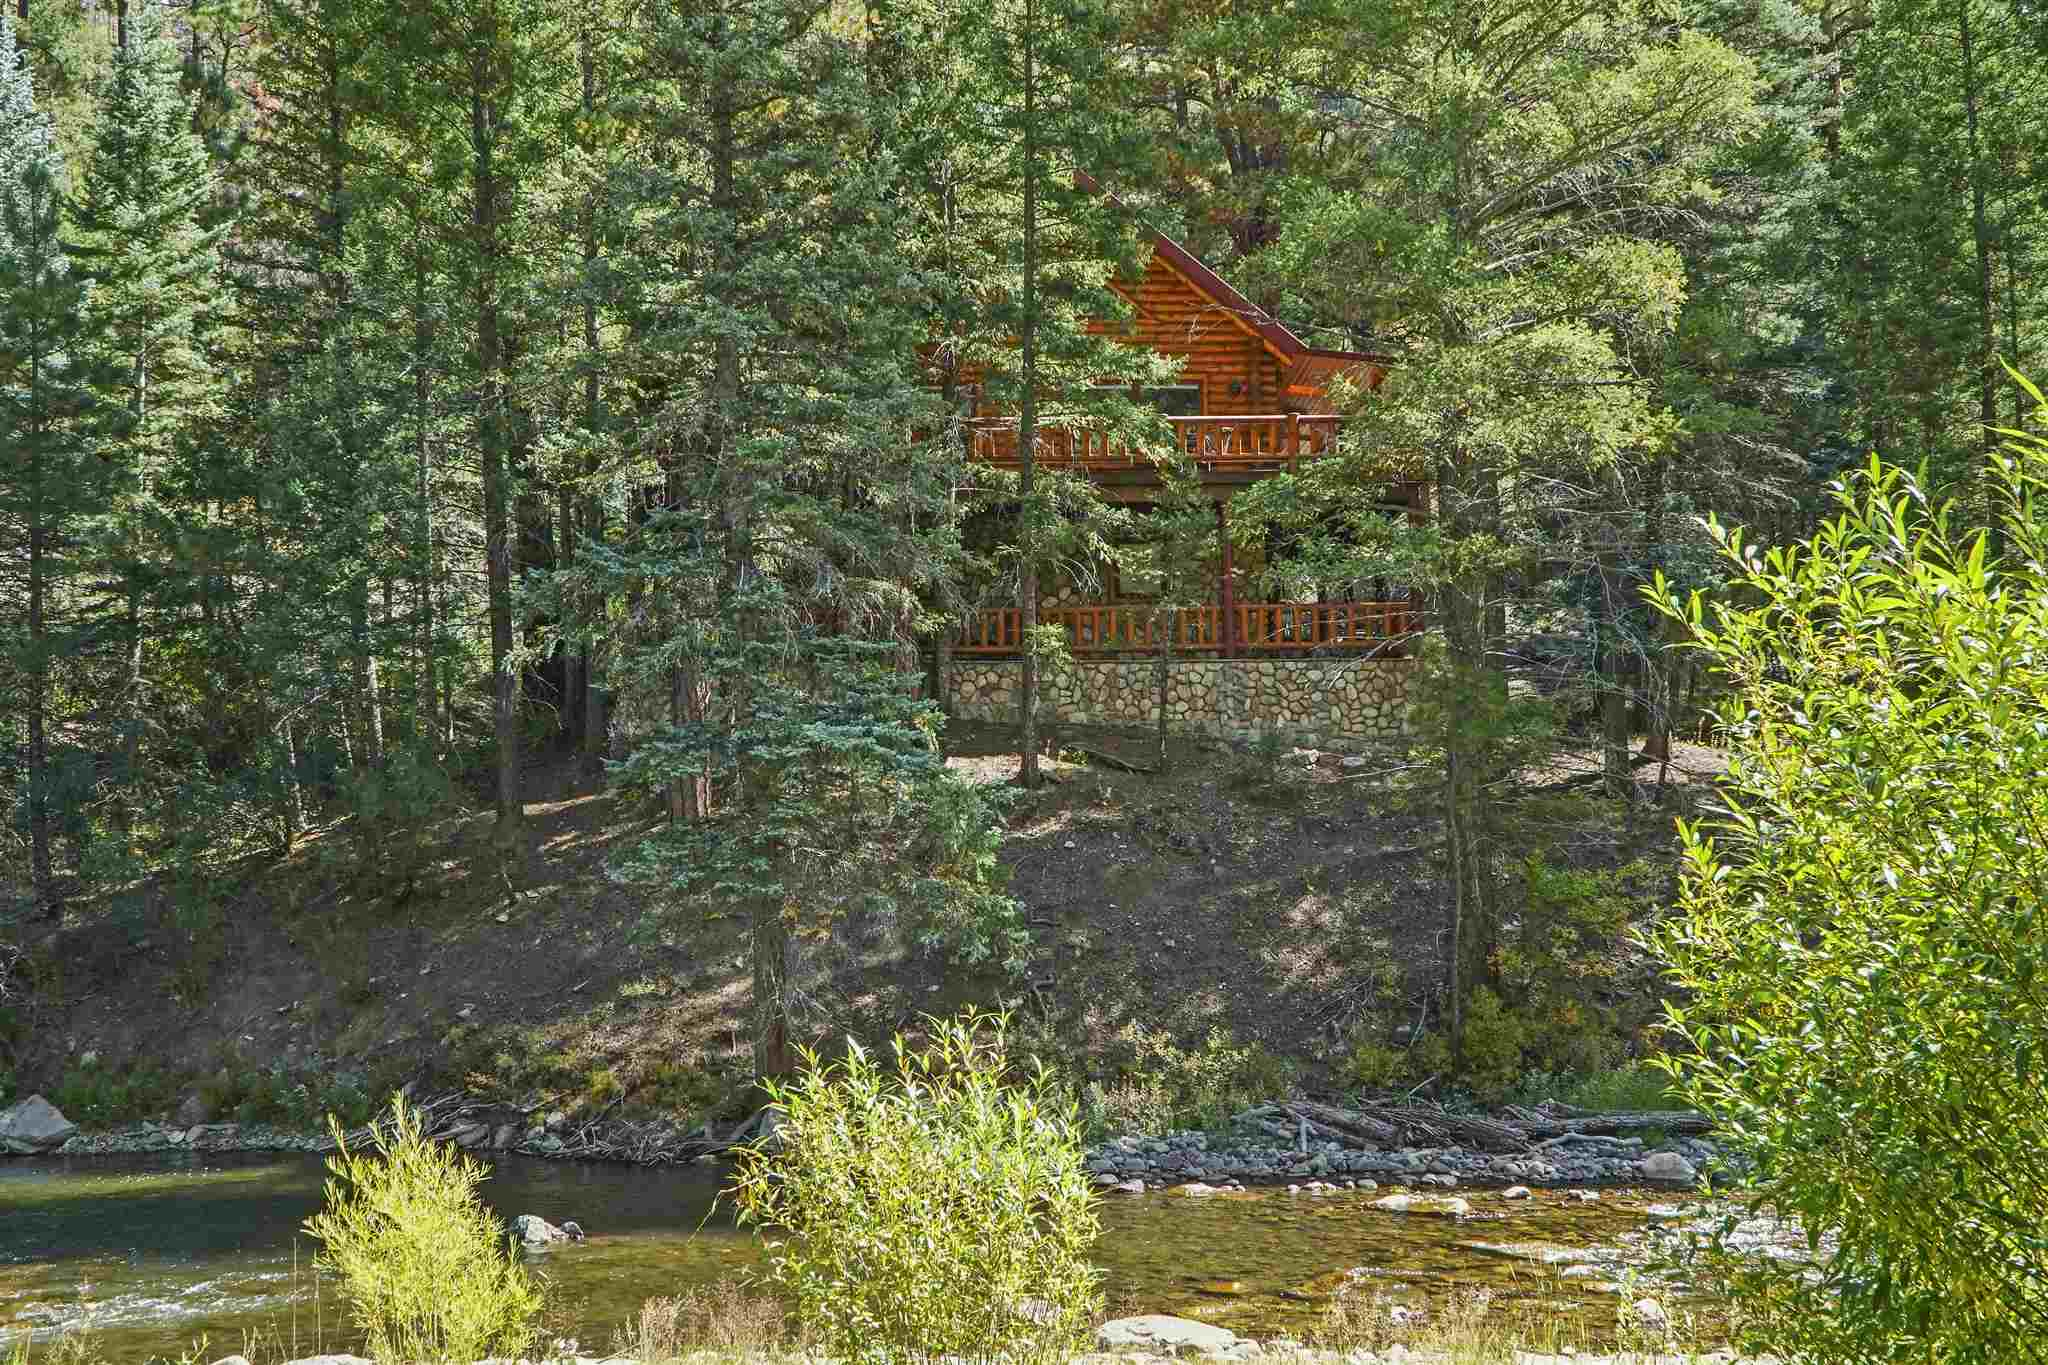 Rare offering of one of the most privately sited cabins in Tres and close proximity to the Santa Fe National Forest. This beautiful log cabin is perched above the river and tucked into the towering pines. Enjoy the sounds and sights of the mountains from within or from the covered and open wraparound deck. The main level features open concept dining, living and kitchen with a stone faced, wood-burning fireplace, spacious guest bedroom and three quarter bathroom. Upstairs is reserved for the master suite with a luxurious master bathroom and two small balconies to enjoy the crisp mountain air. The lower level, walk out basement features a bunk bedroom with a full bathroom, plus a fly fishing staging area, perfect for putting on waders and heading out to fish! Tres Lagunas offers private water fly fishing exclusive to owners and their guests, over one third of a mile of the Pecos River, 3 stocked ponds, on-site caretakers, all make for a wonderful retreat less than an hour from Santa Fe.